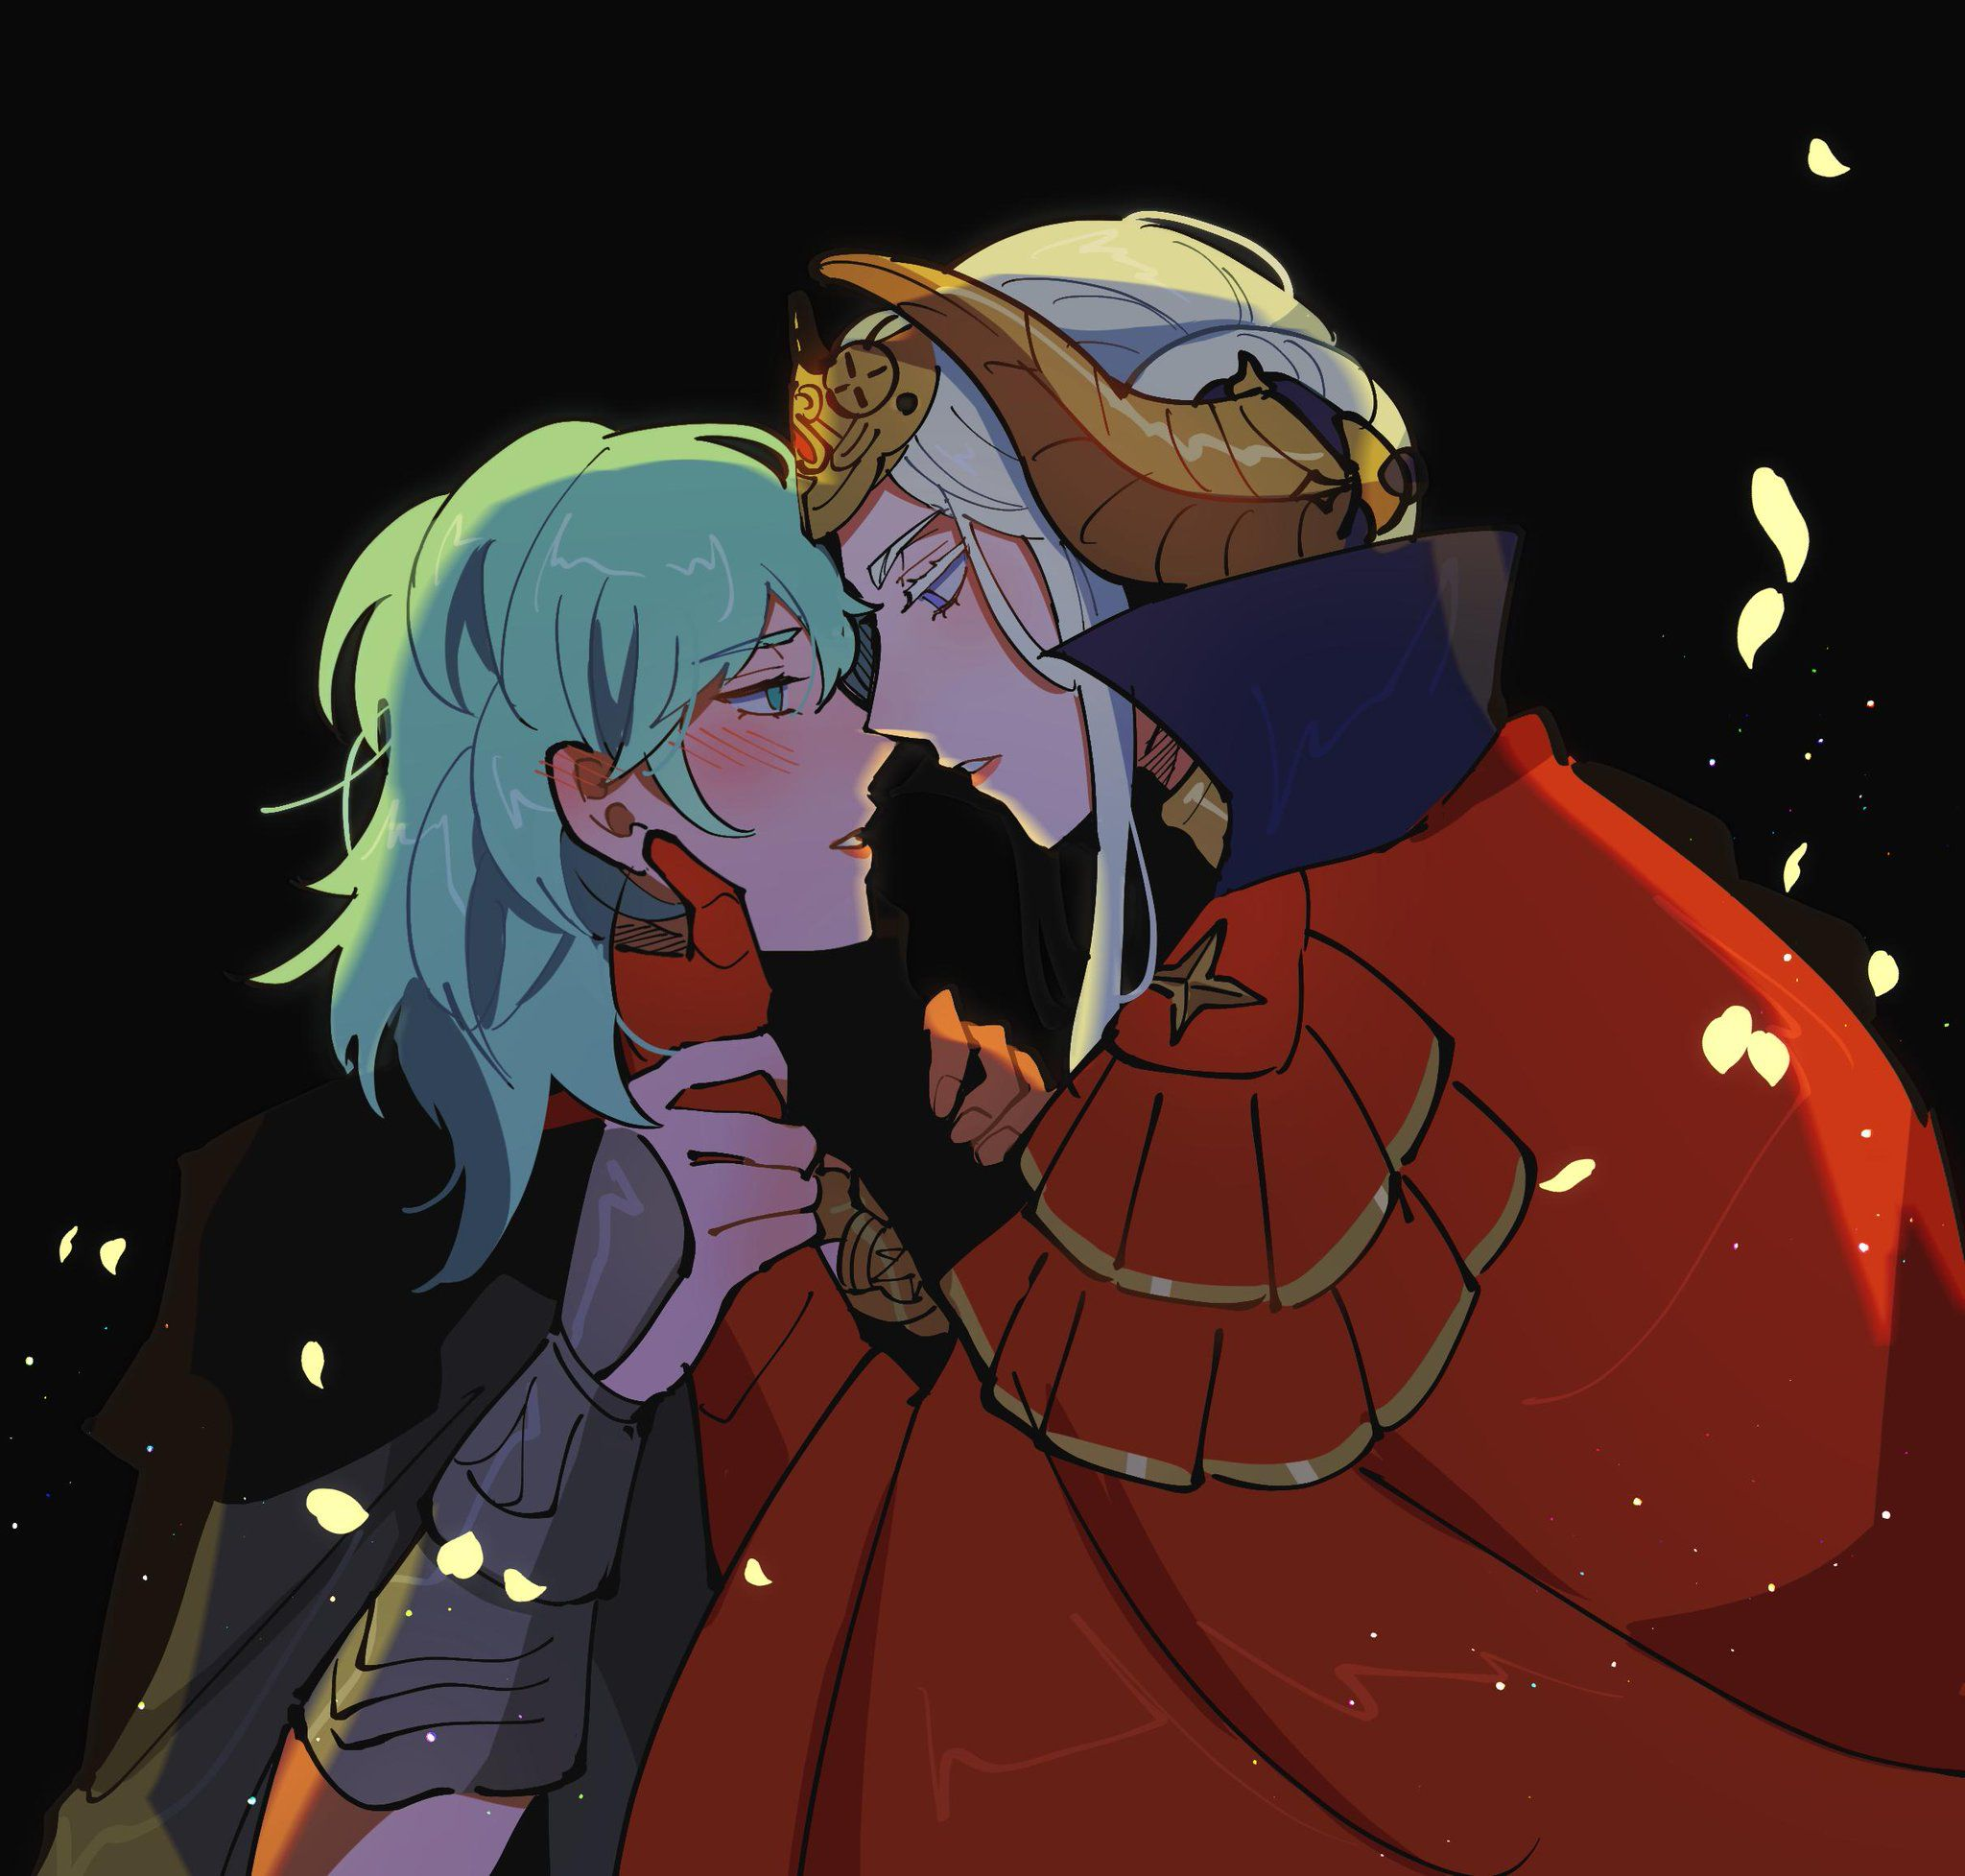 Fire emblem characters image by margaret on → houses